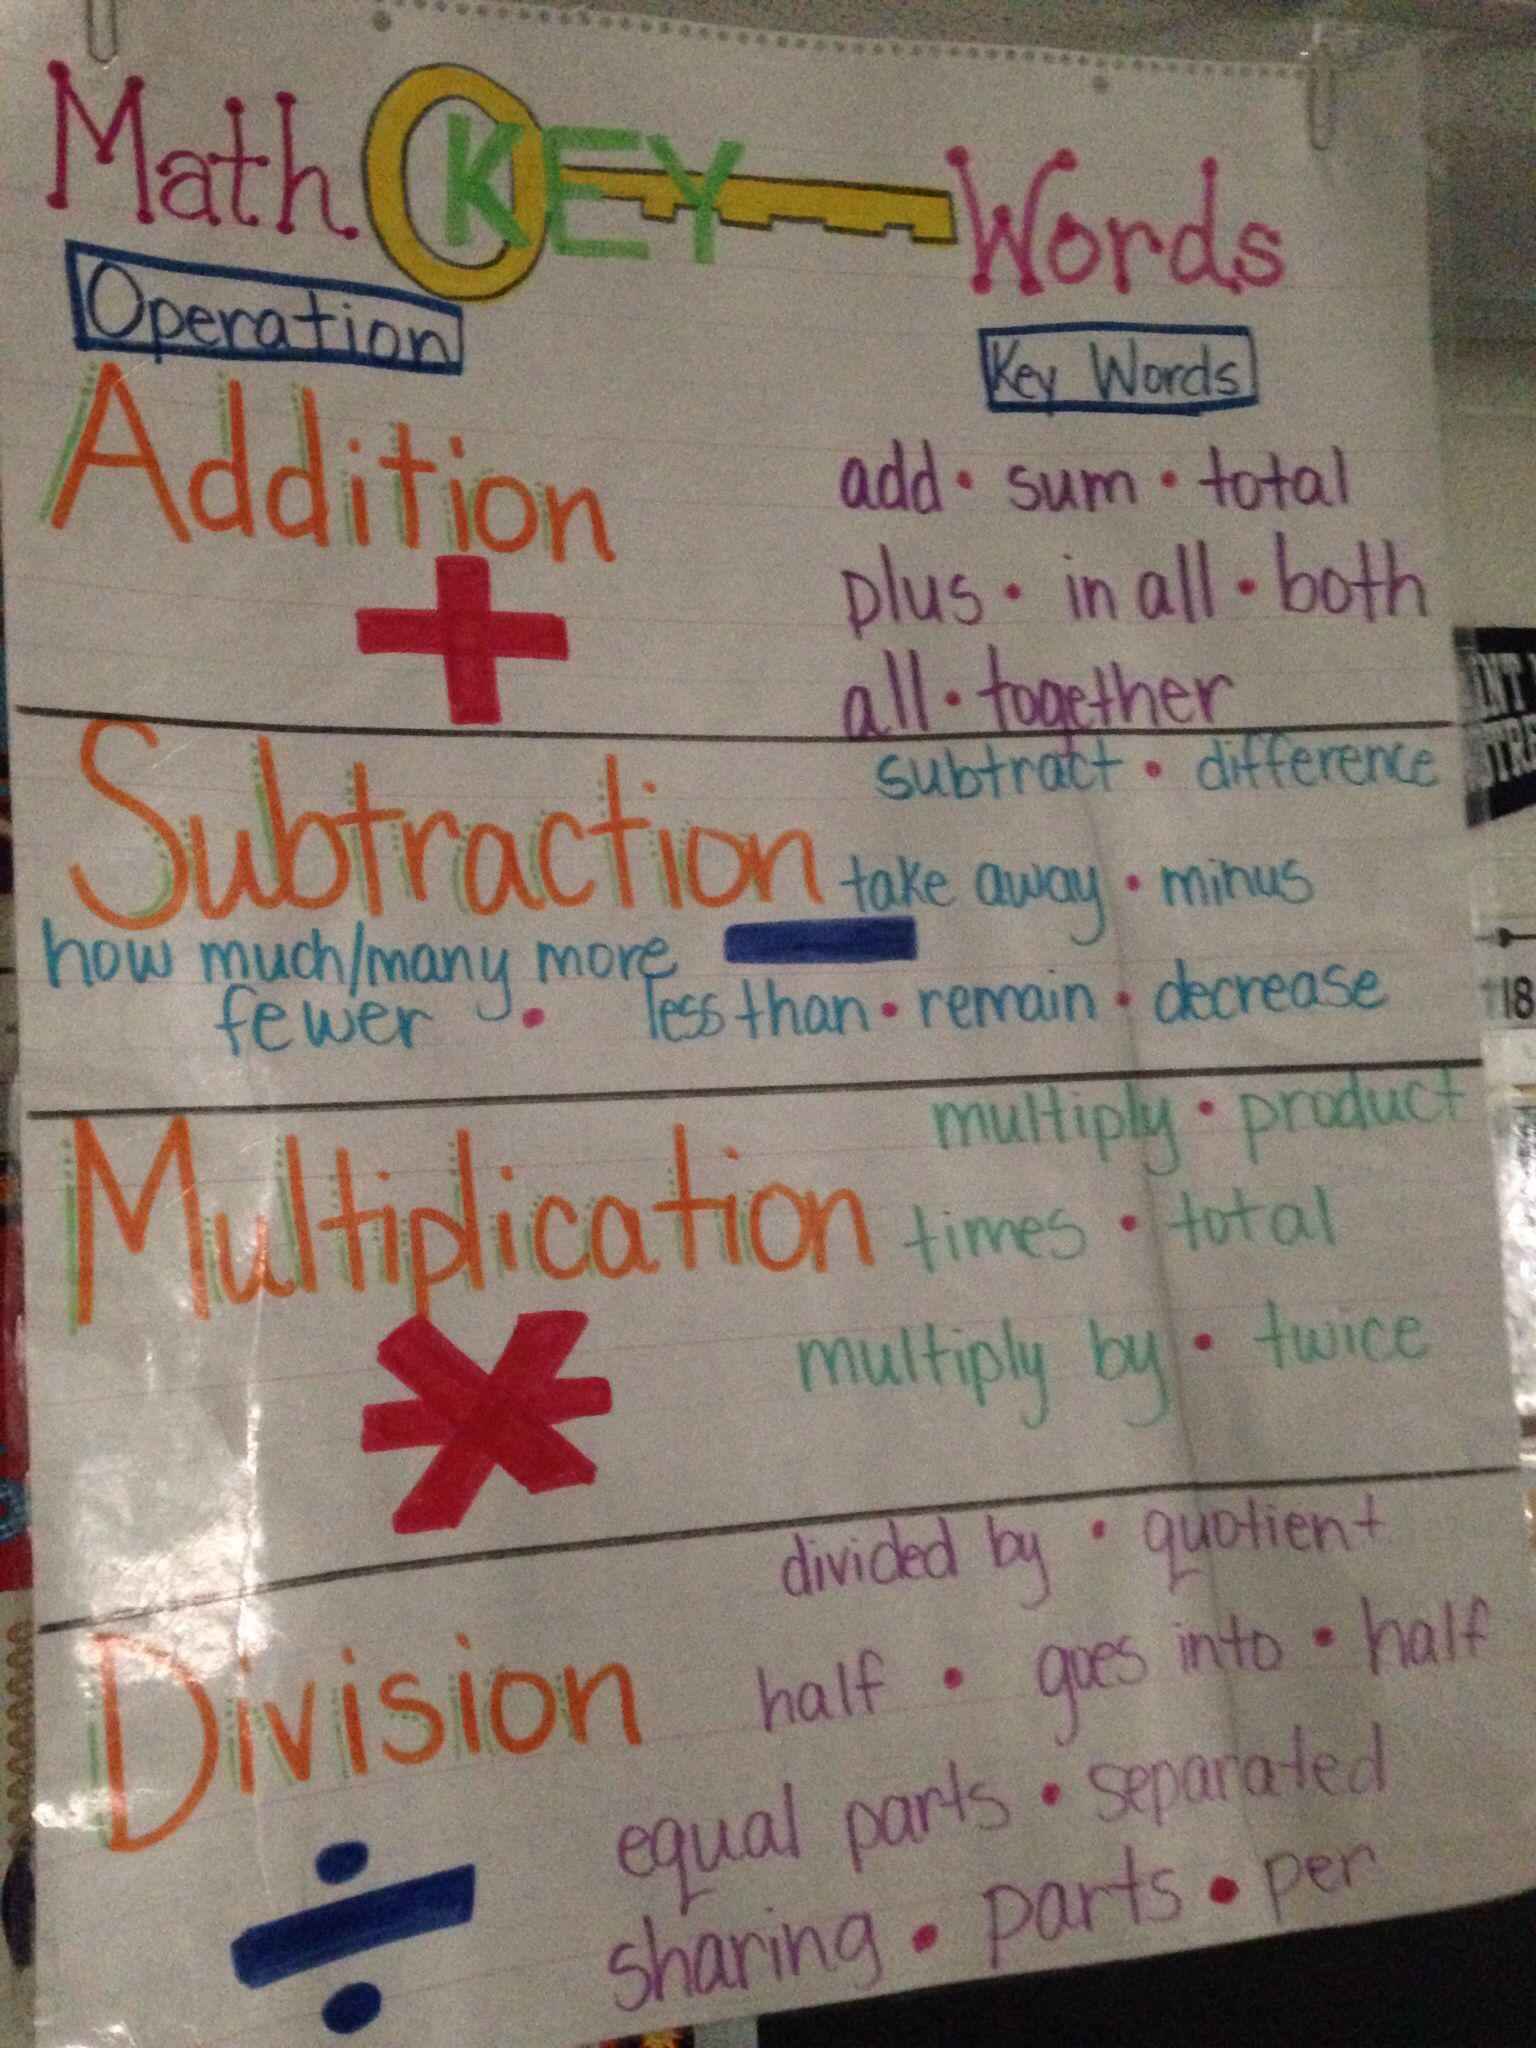 Key Words For Math Operations